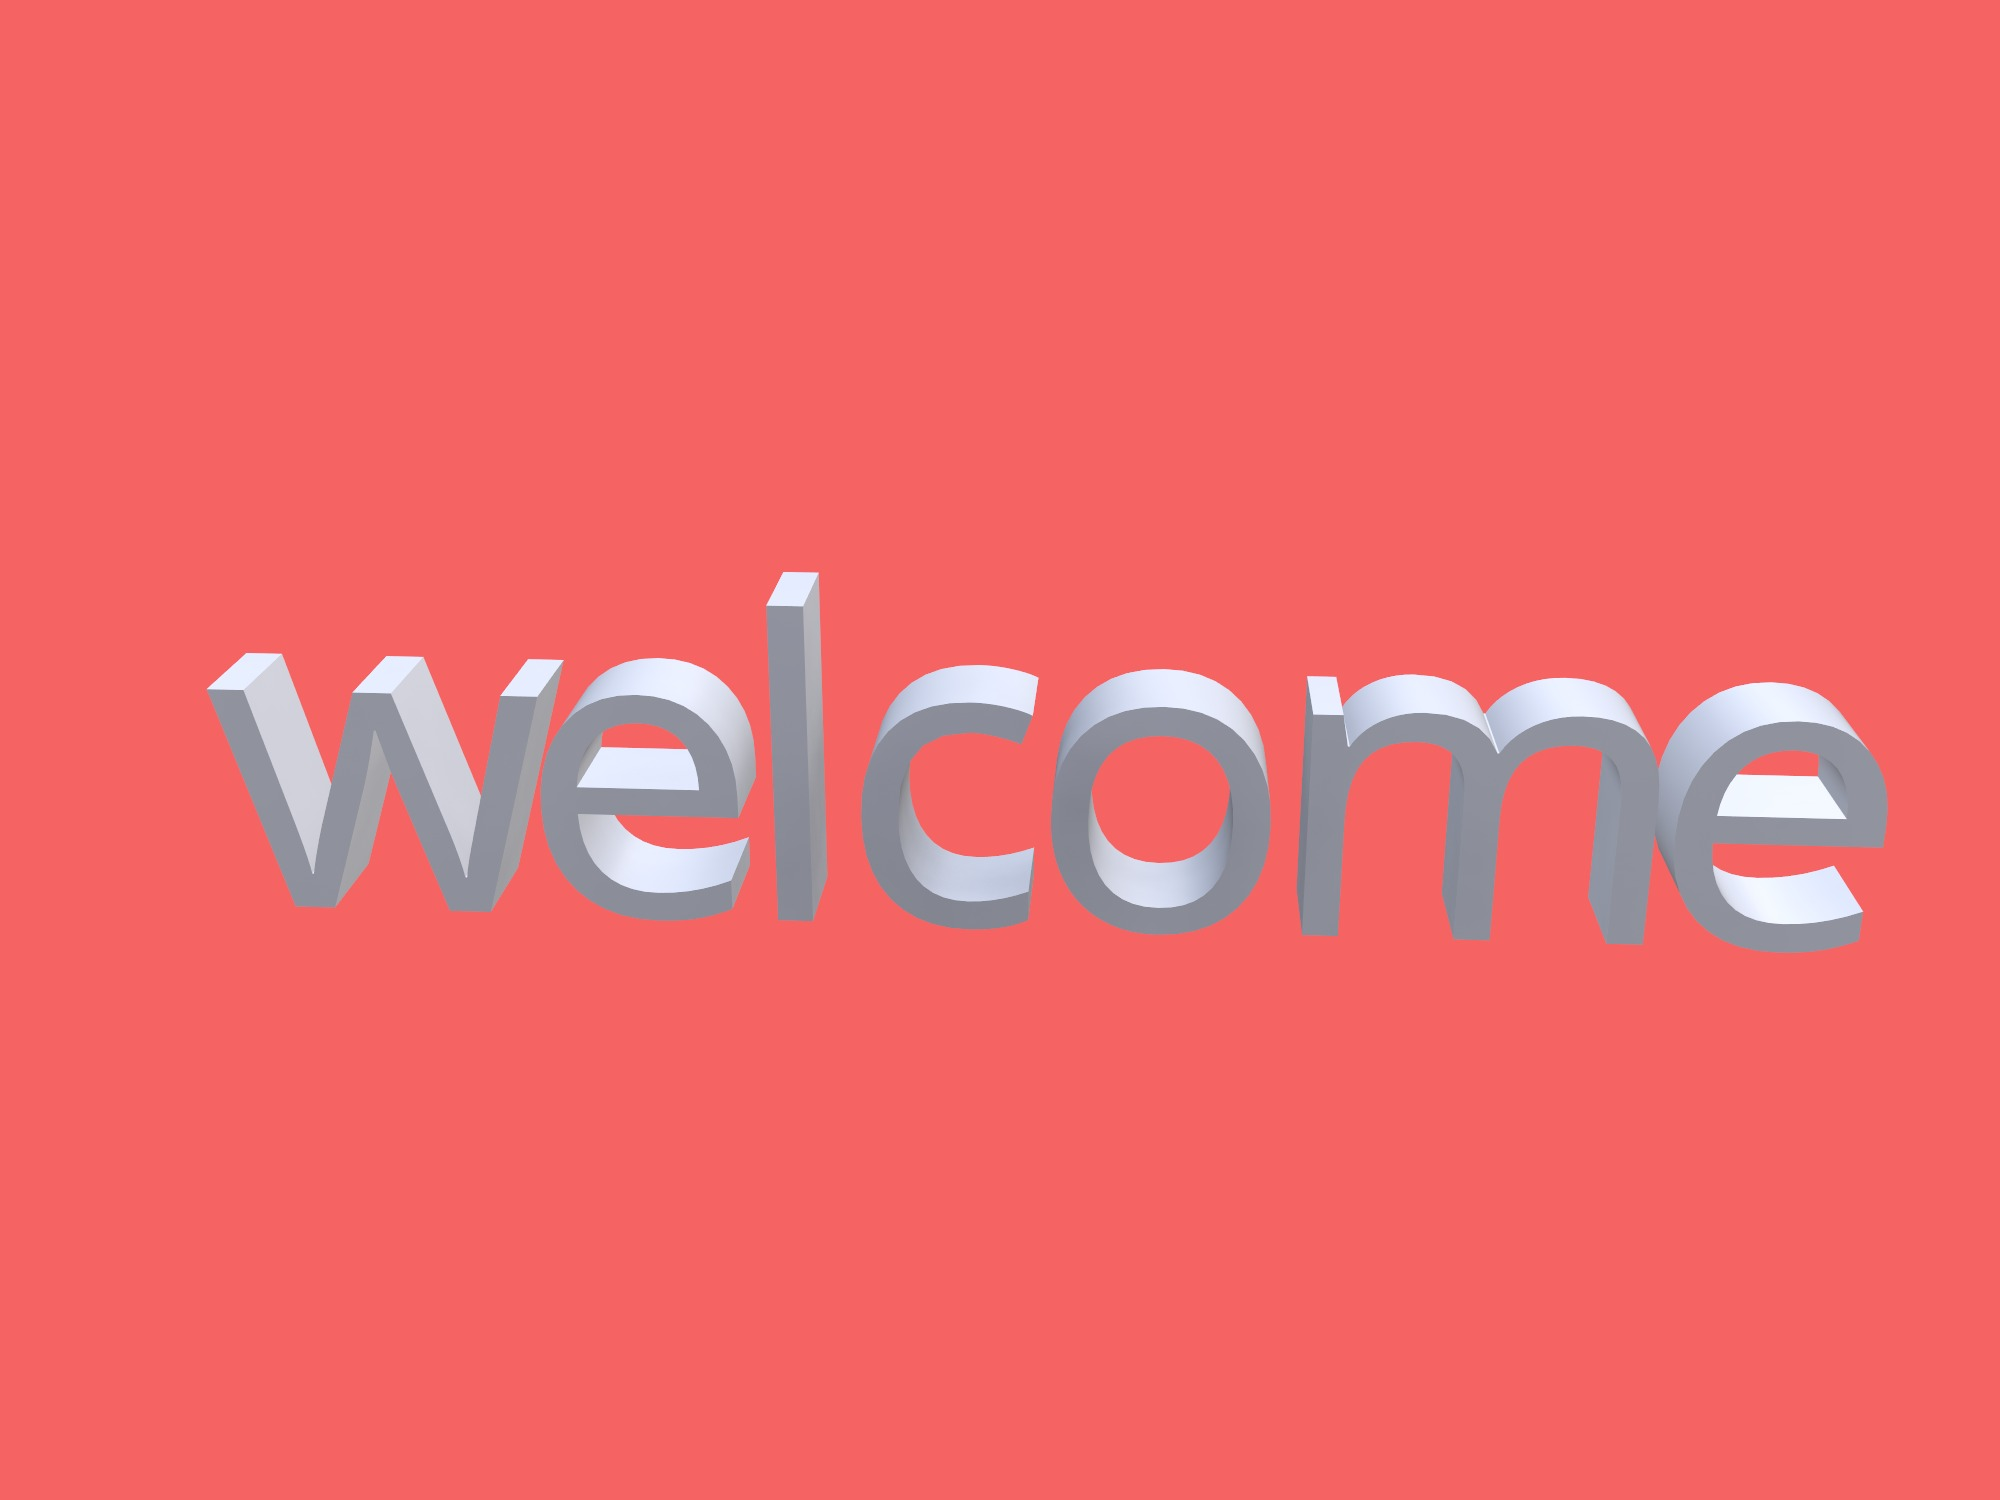 welcome (copy) - 3D design by e11ison on Jan 15, 2019